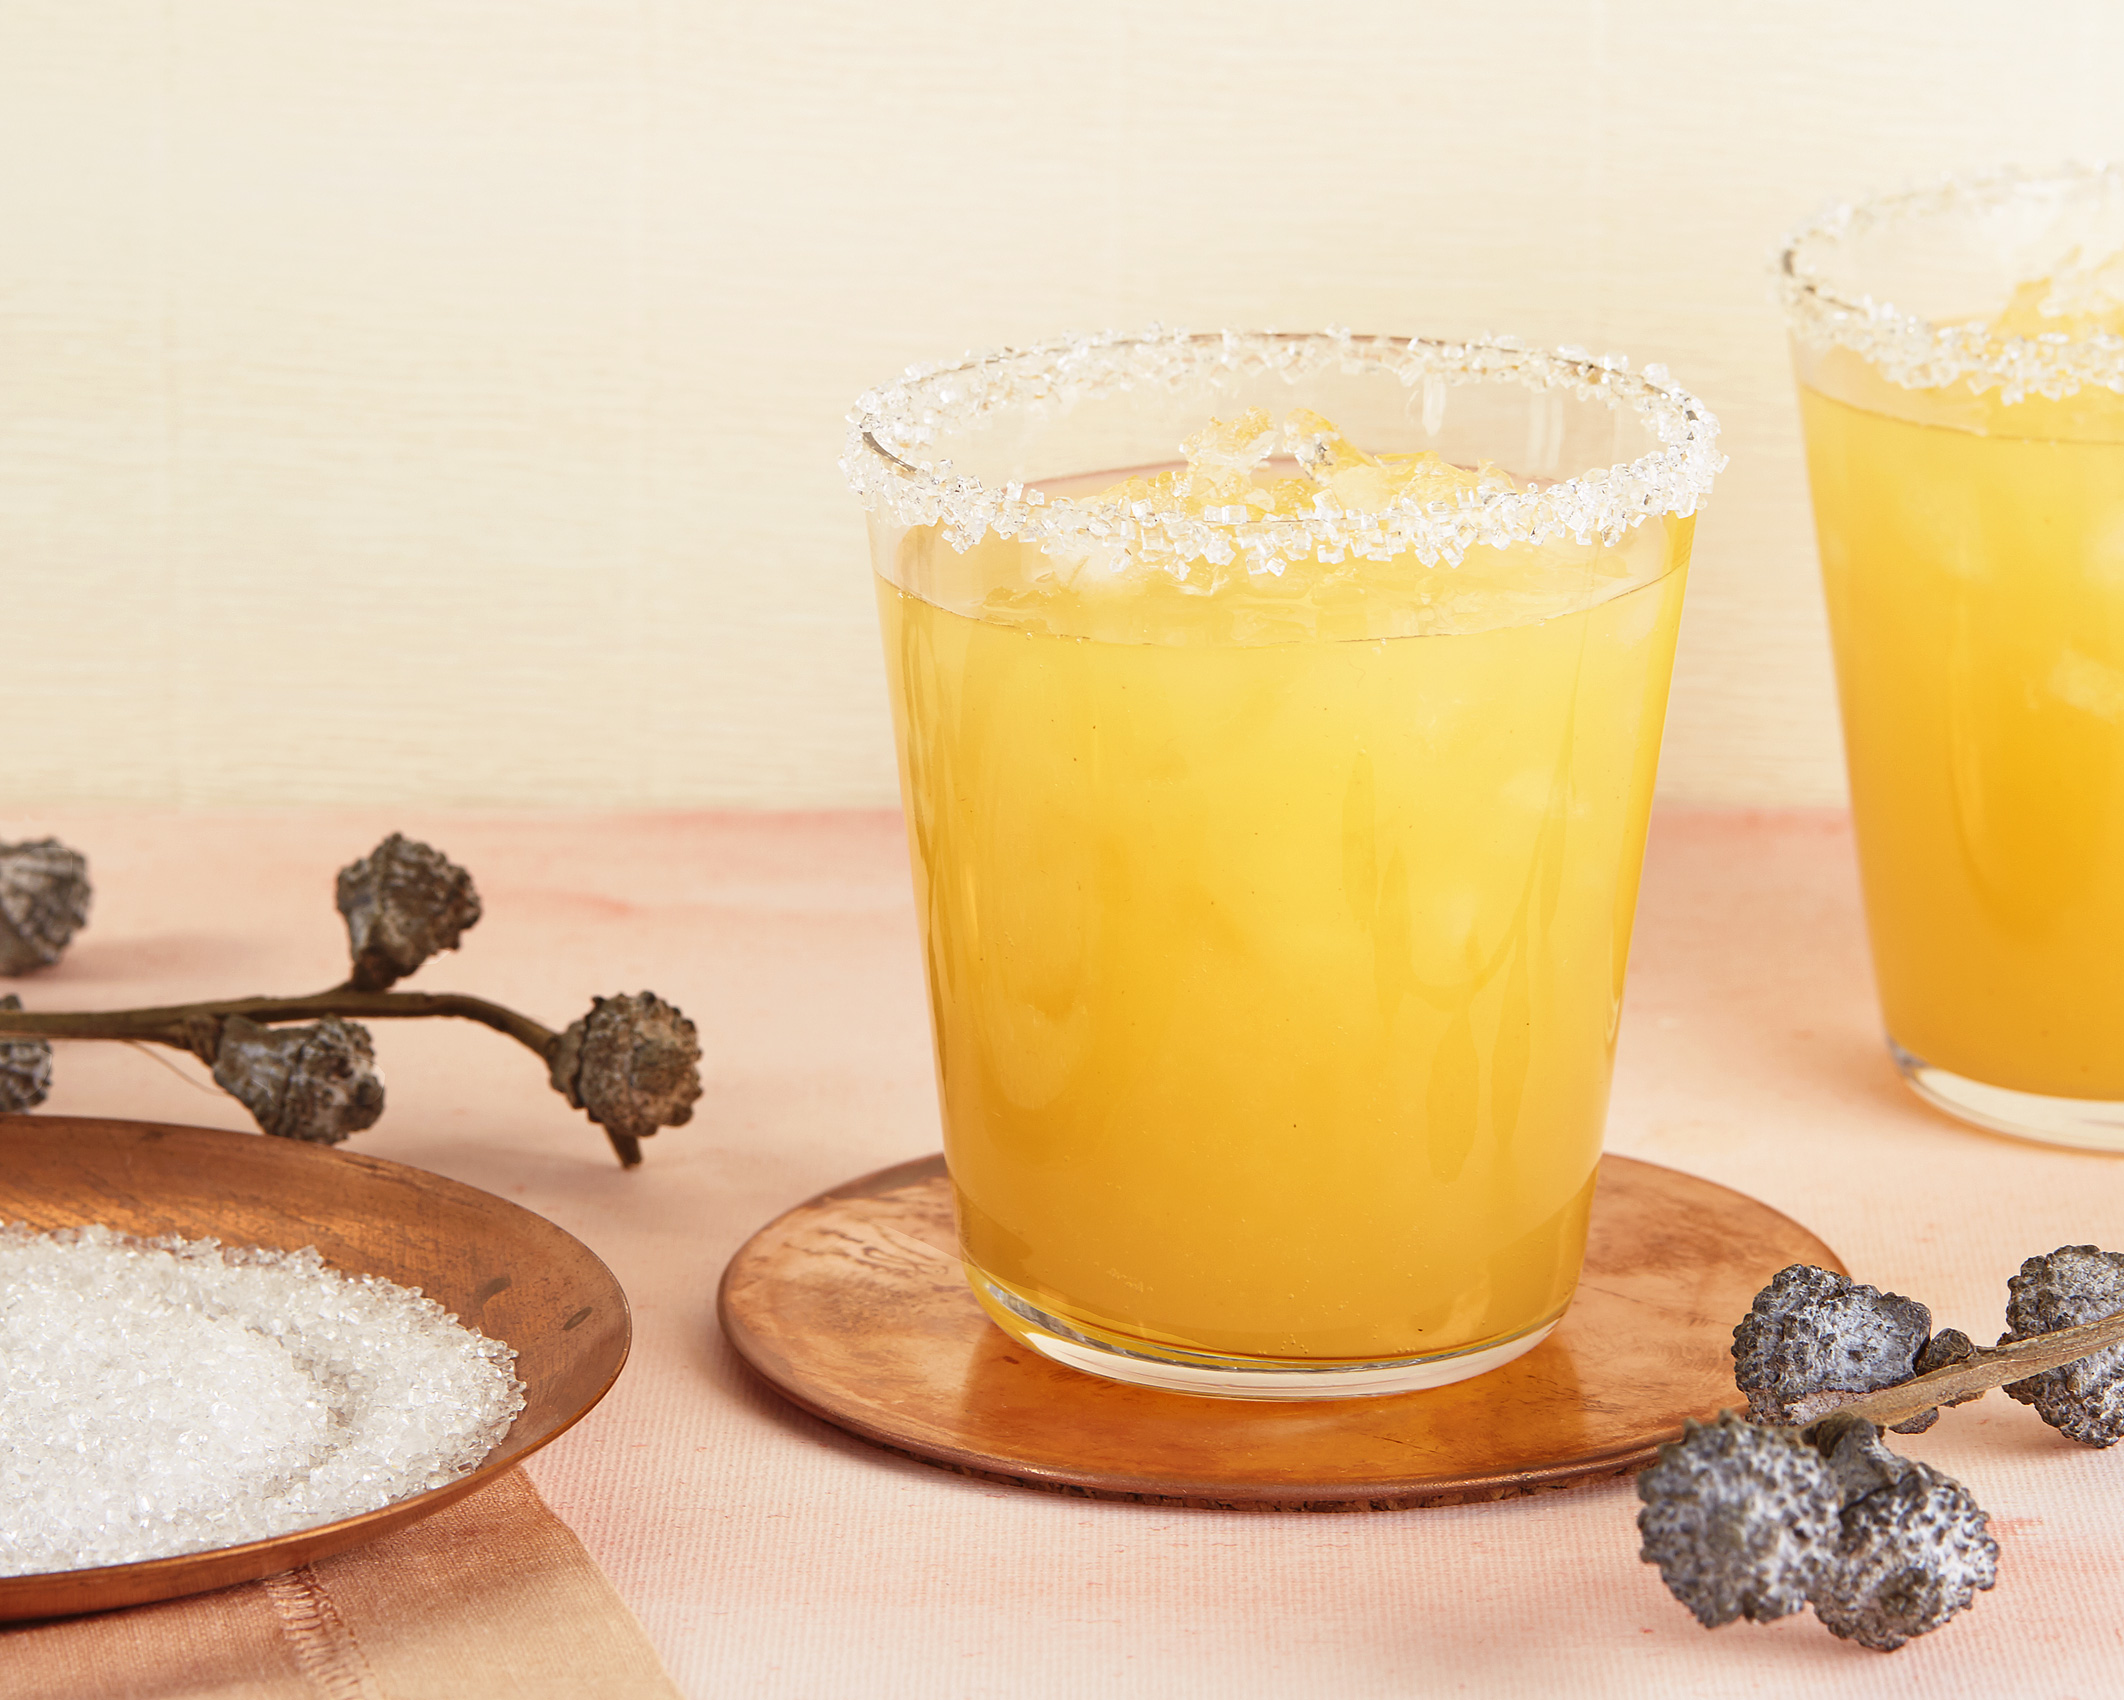 peach-ginger_drink-recipe_ty-mecham_tara-teaspoon_4x5